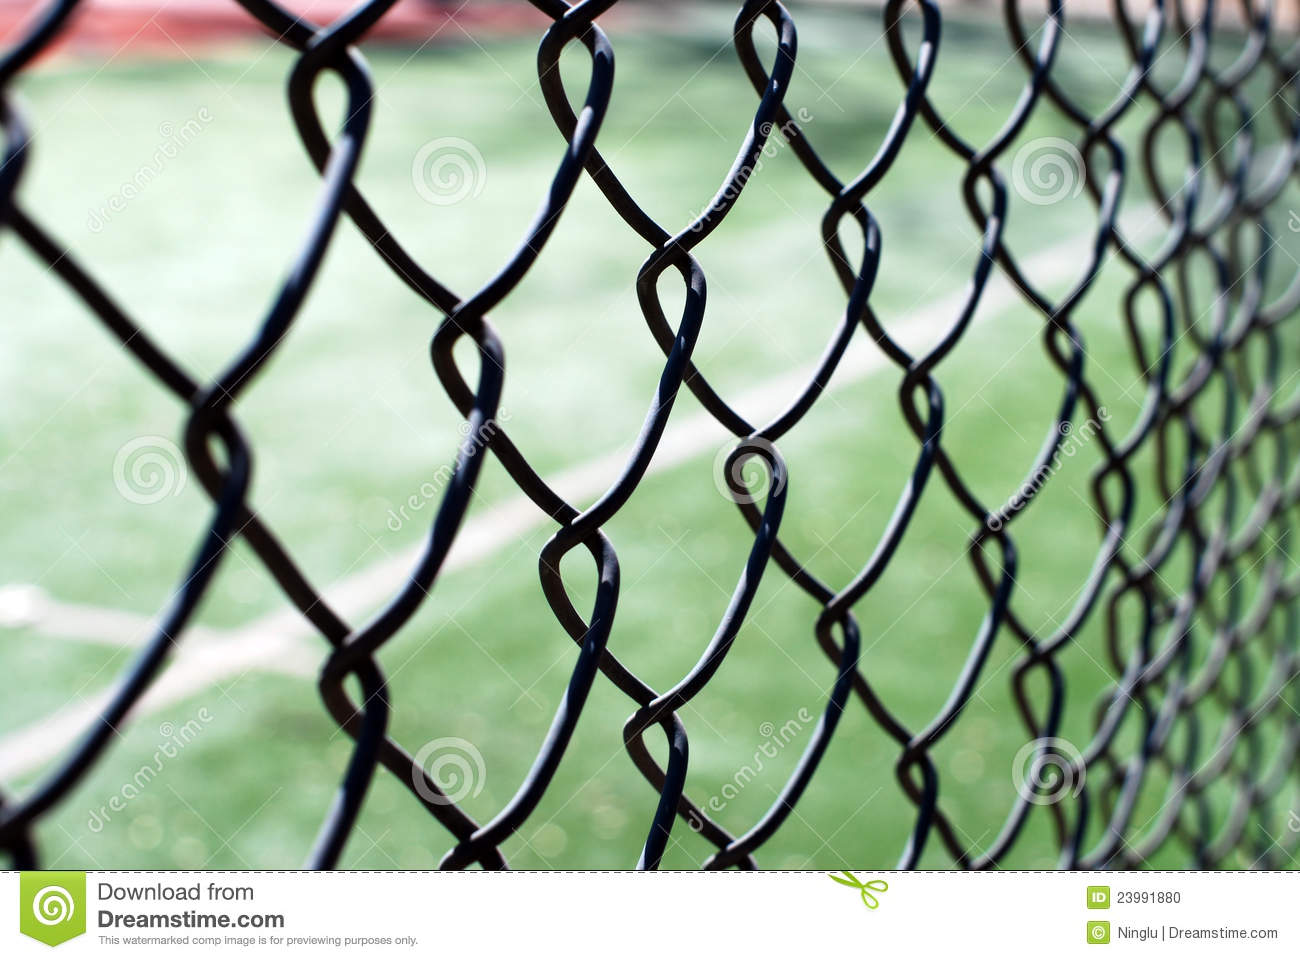 Chain fence stock photography cartoondealer